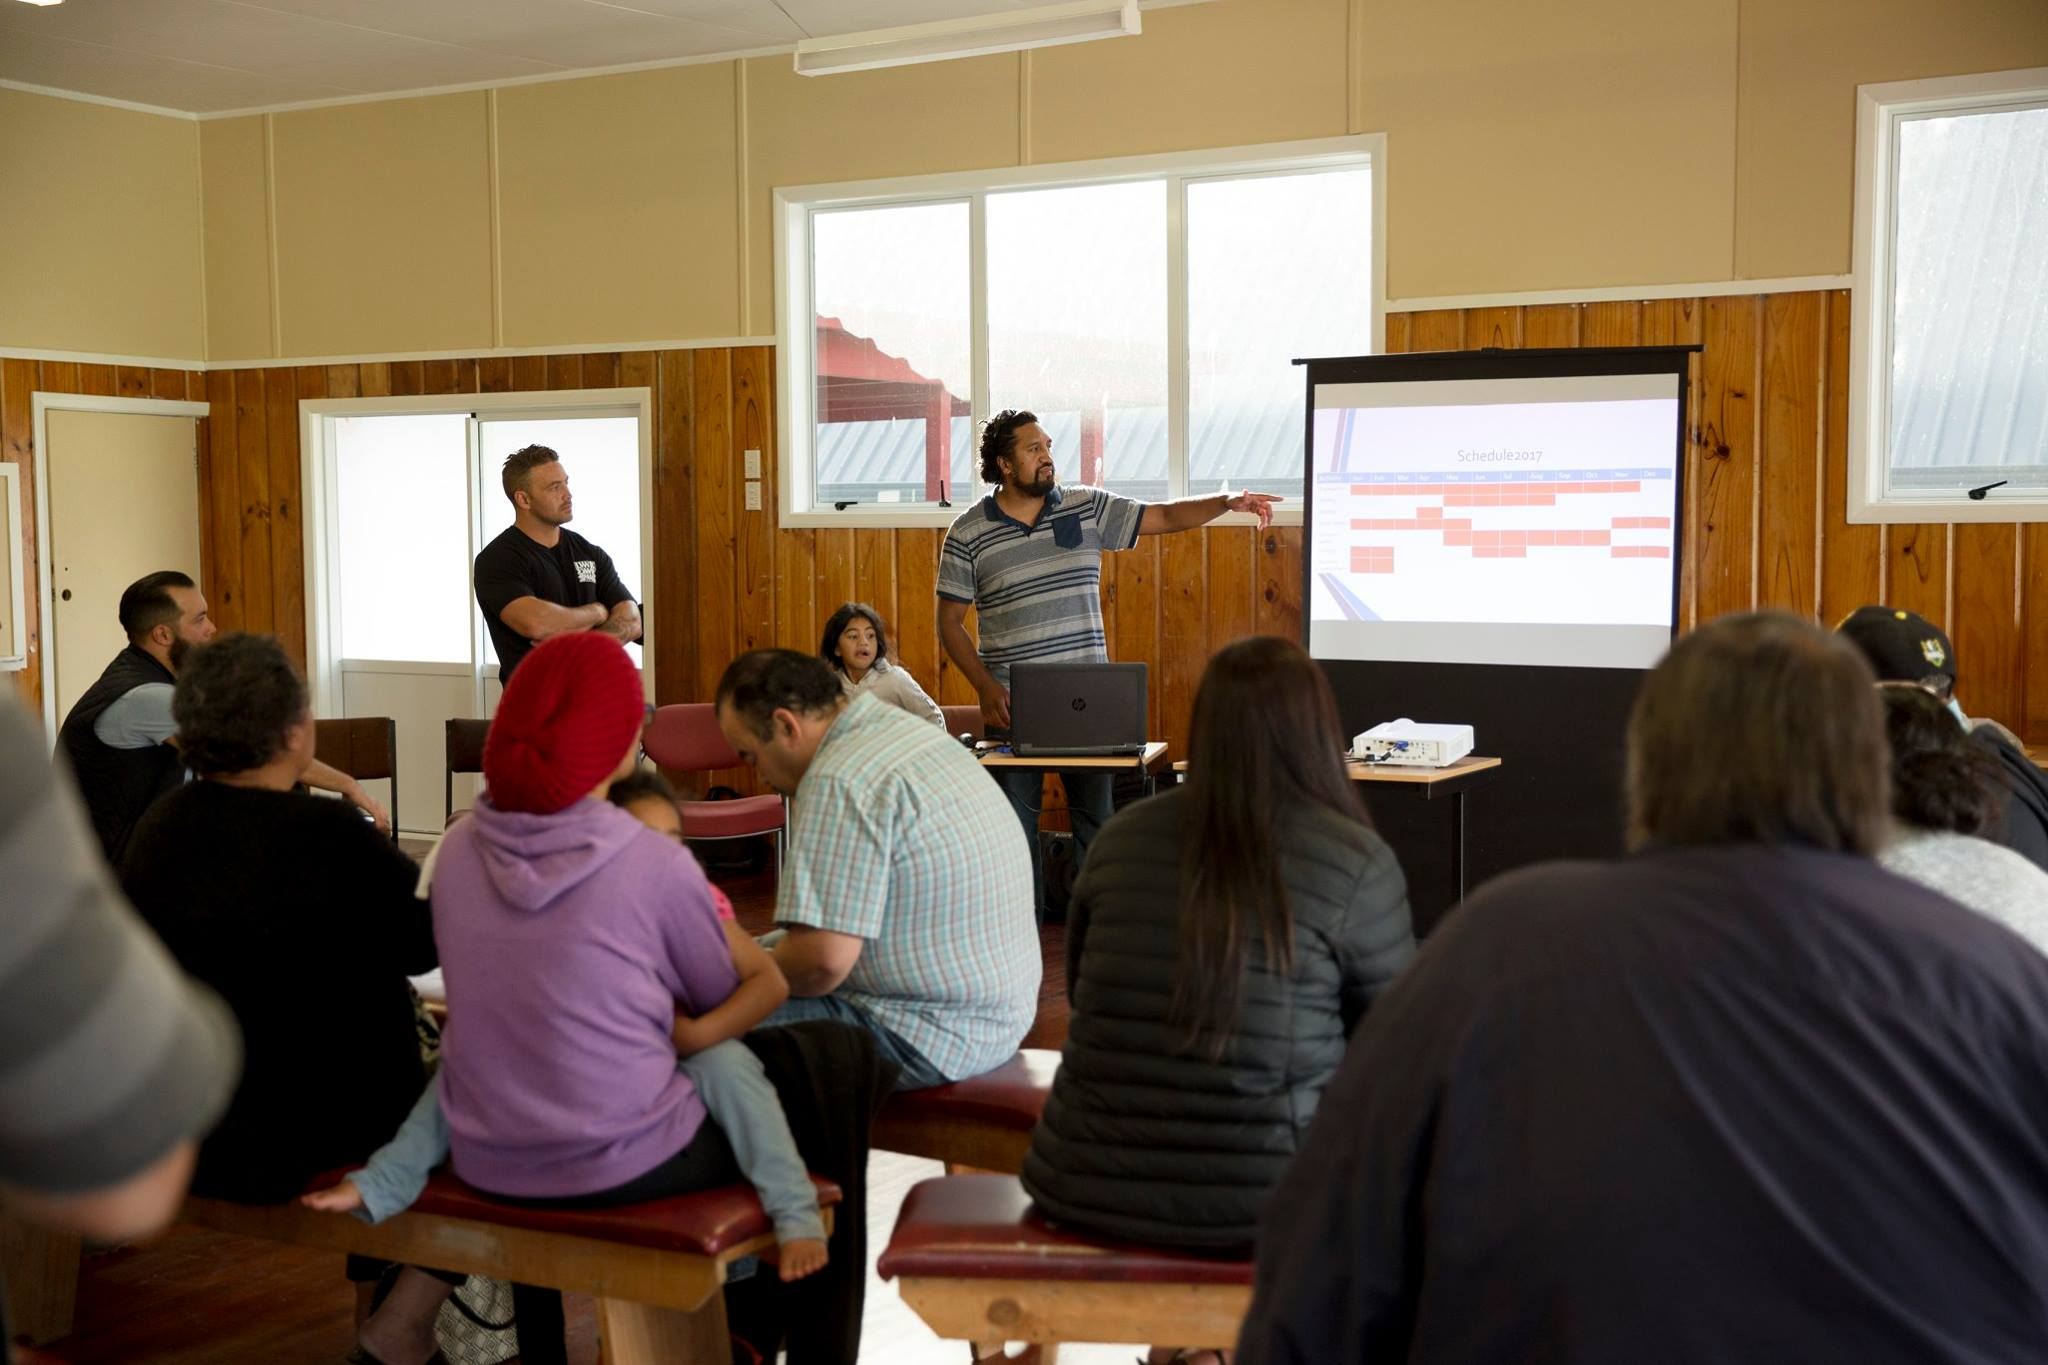 Waiora Workshop13.jpg